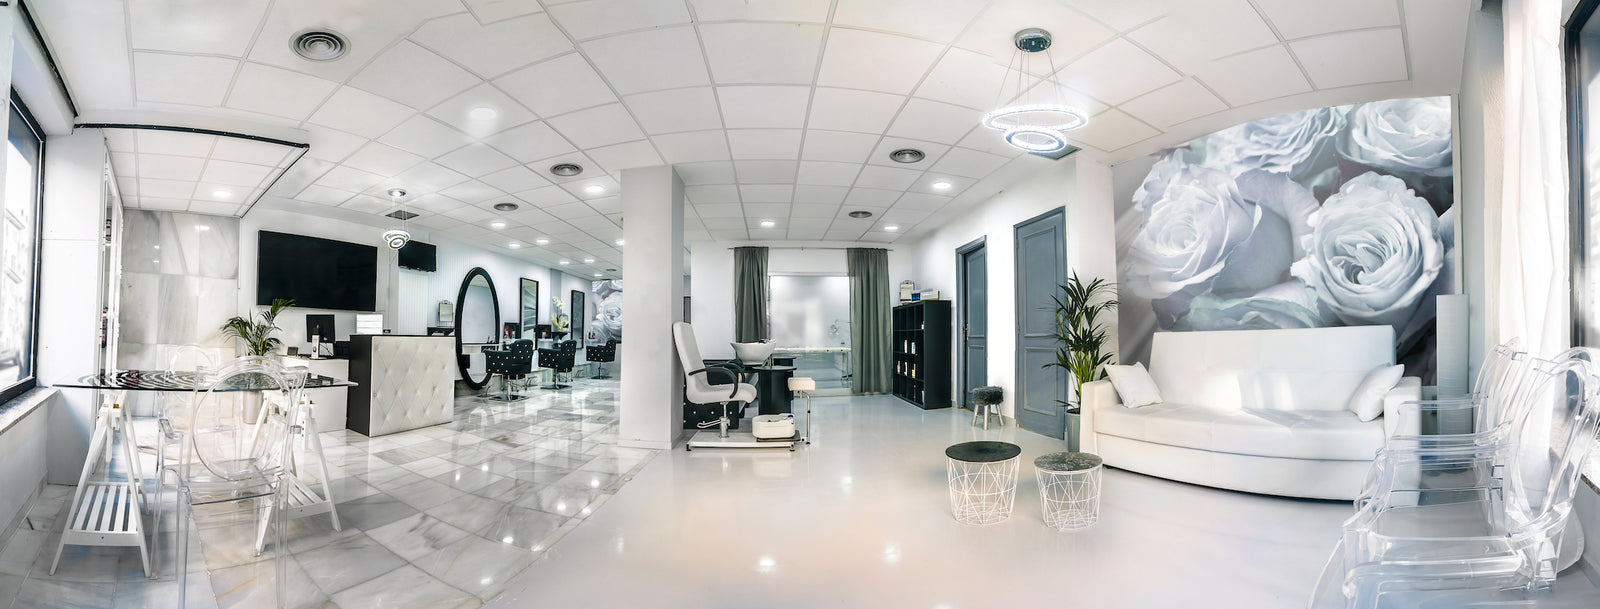 How to Create an Inviting Atmosphere for Repeat Salon Customers